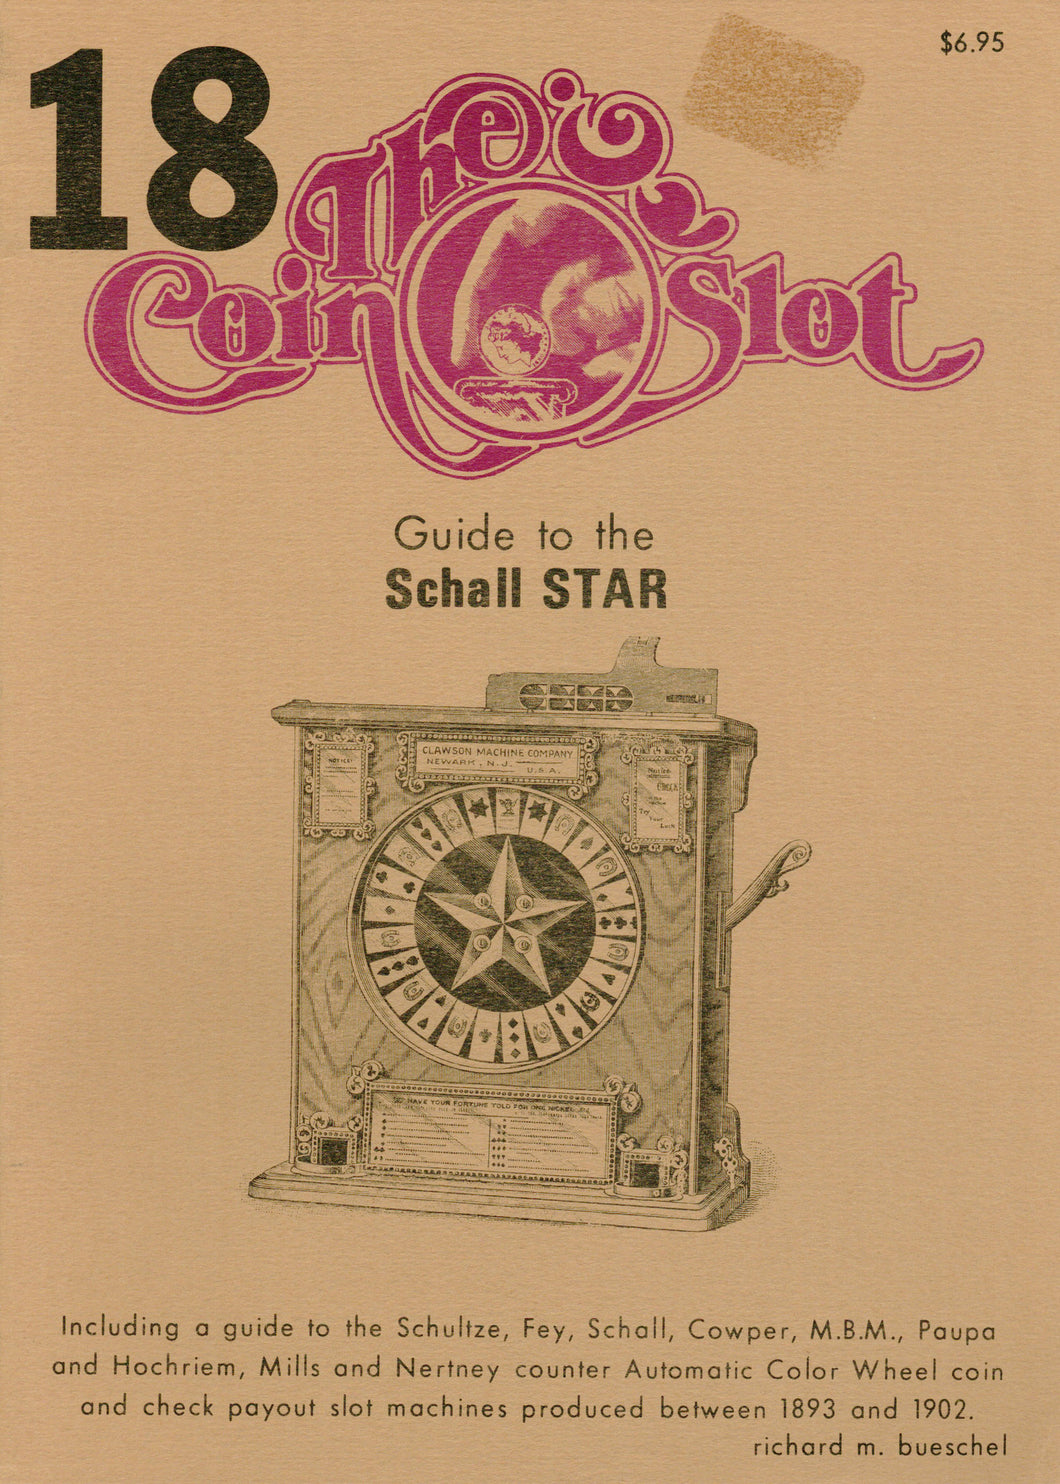 Coin Slot #18. Guide to the Schall Star